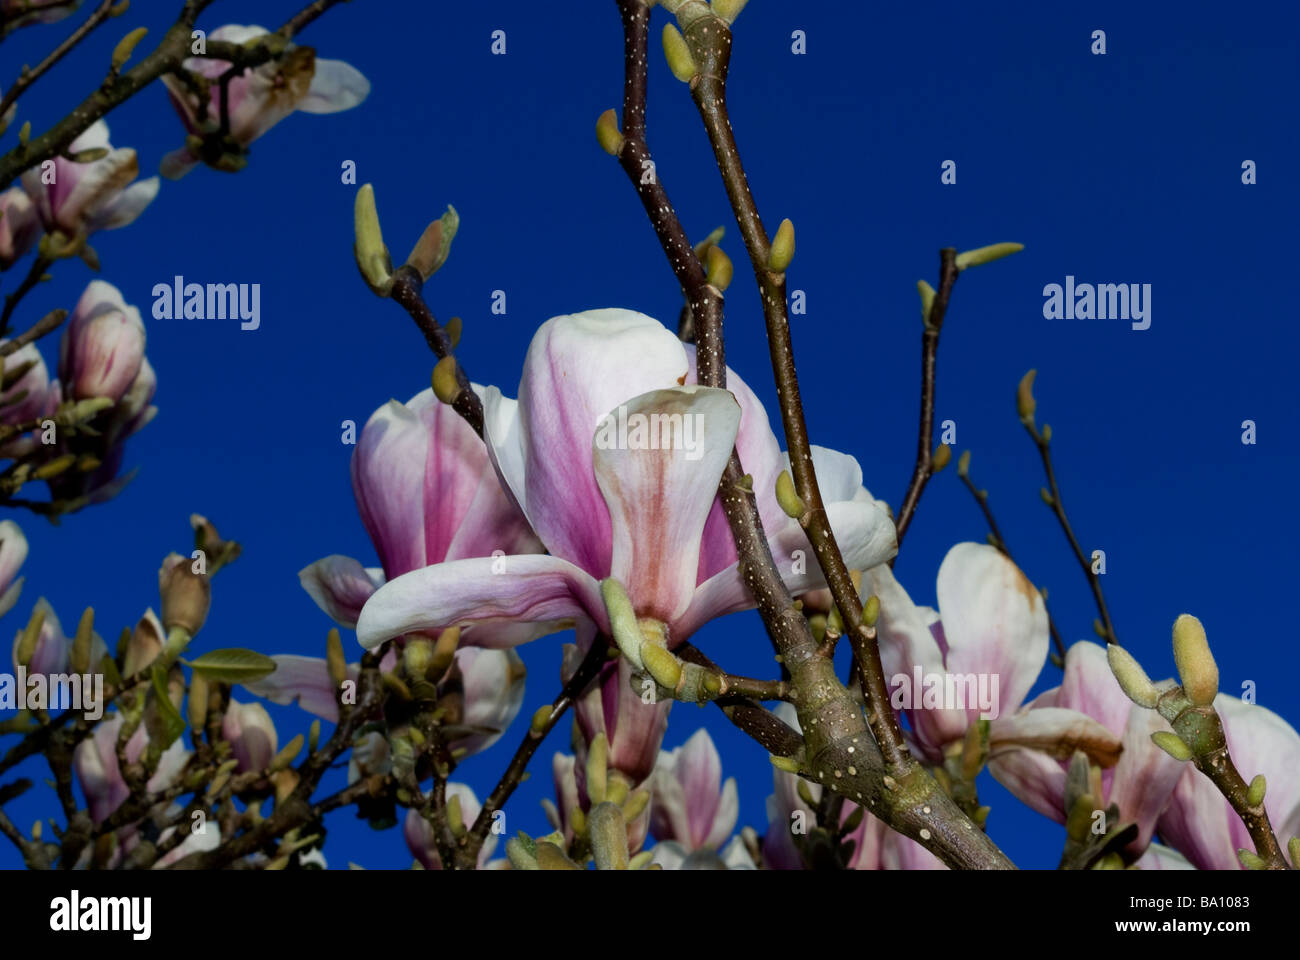 Magnolia Tree In Bloom Flowering Magnolia Blue Sky Clouding Over